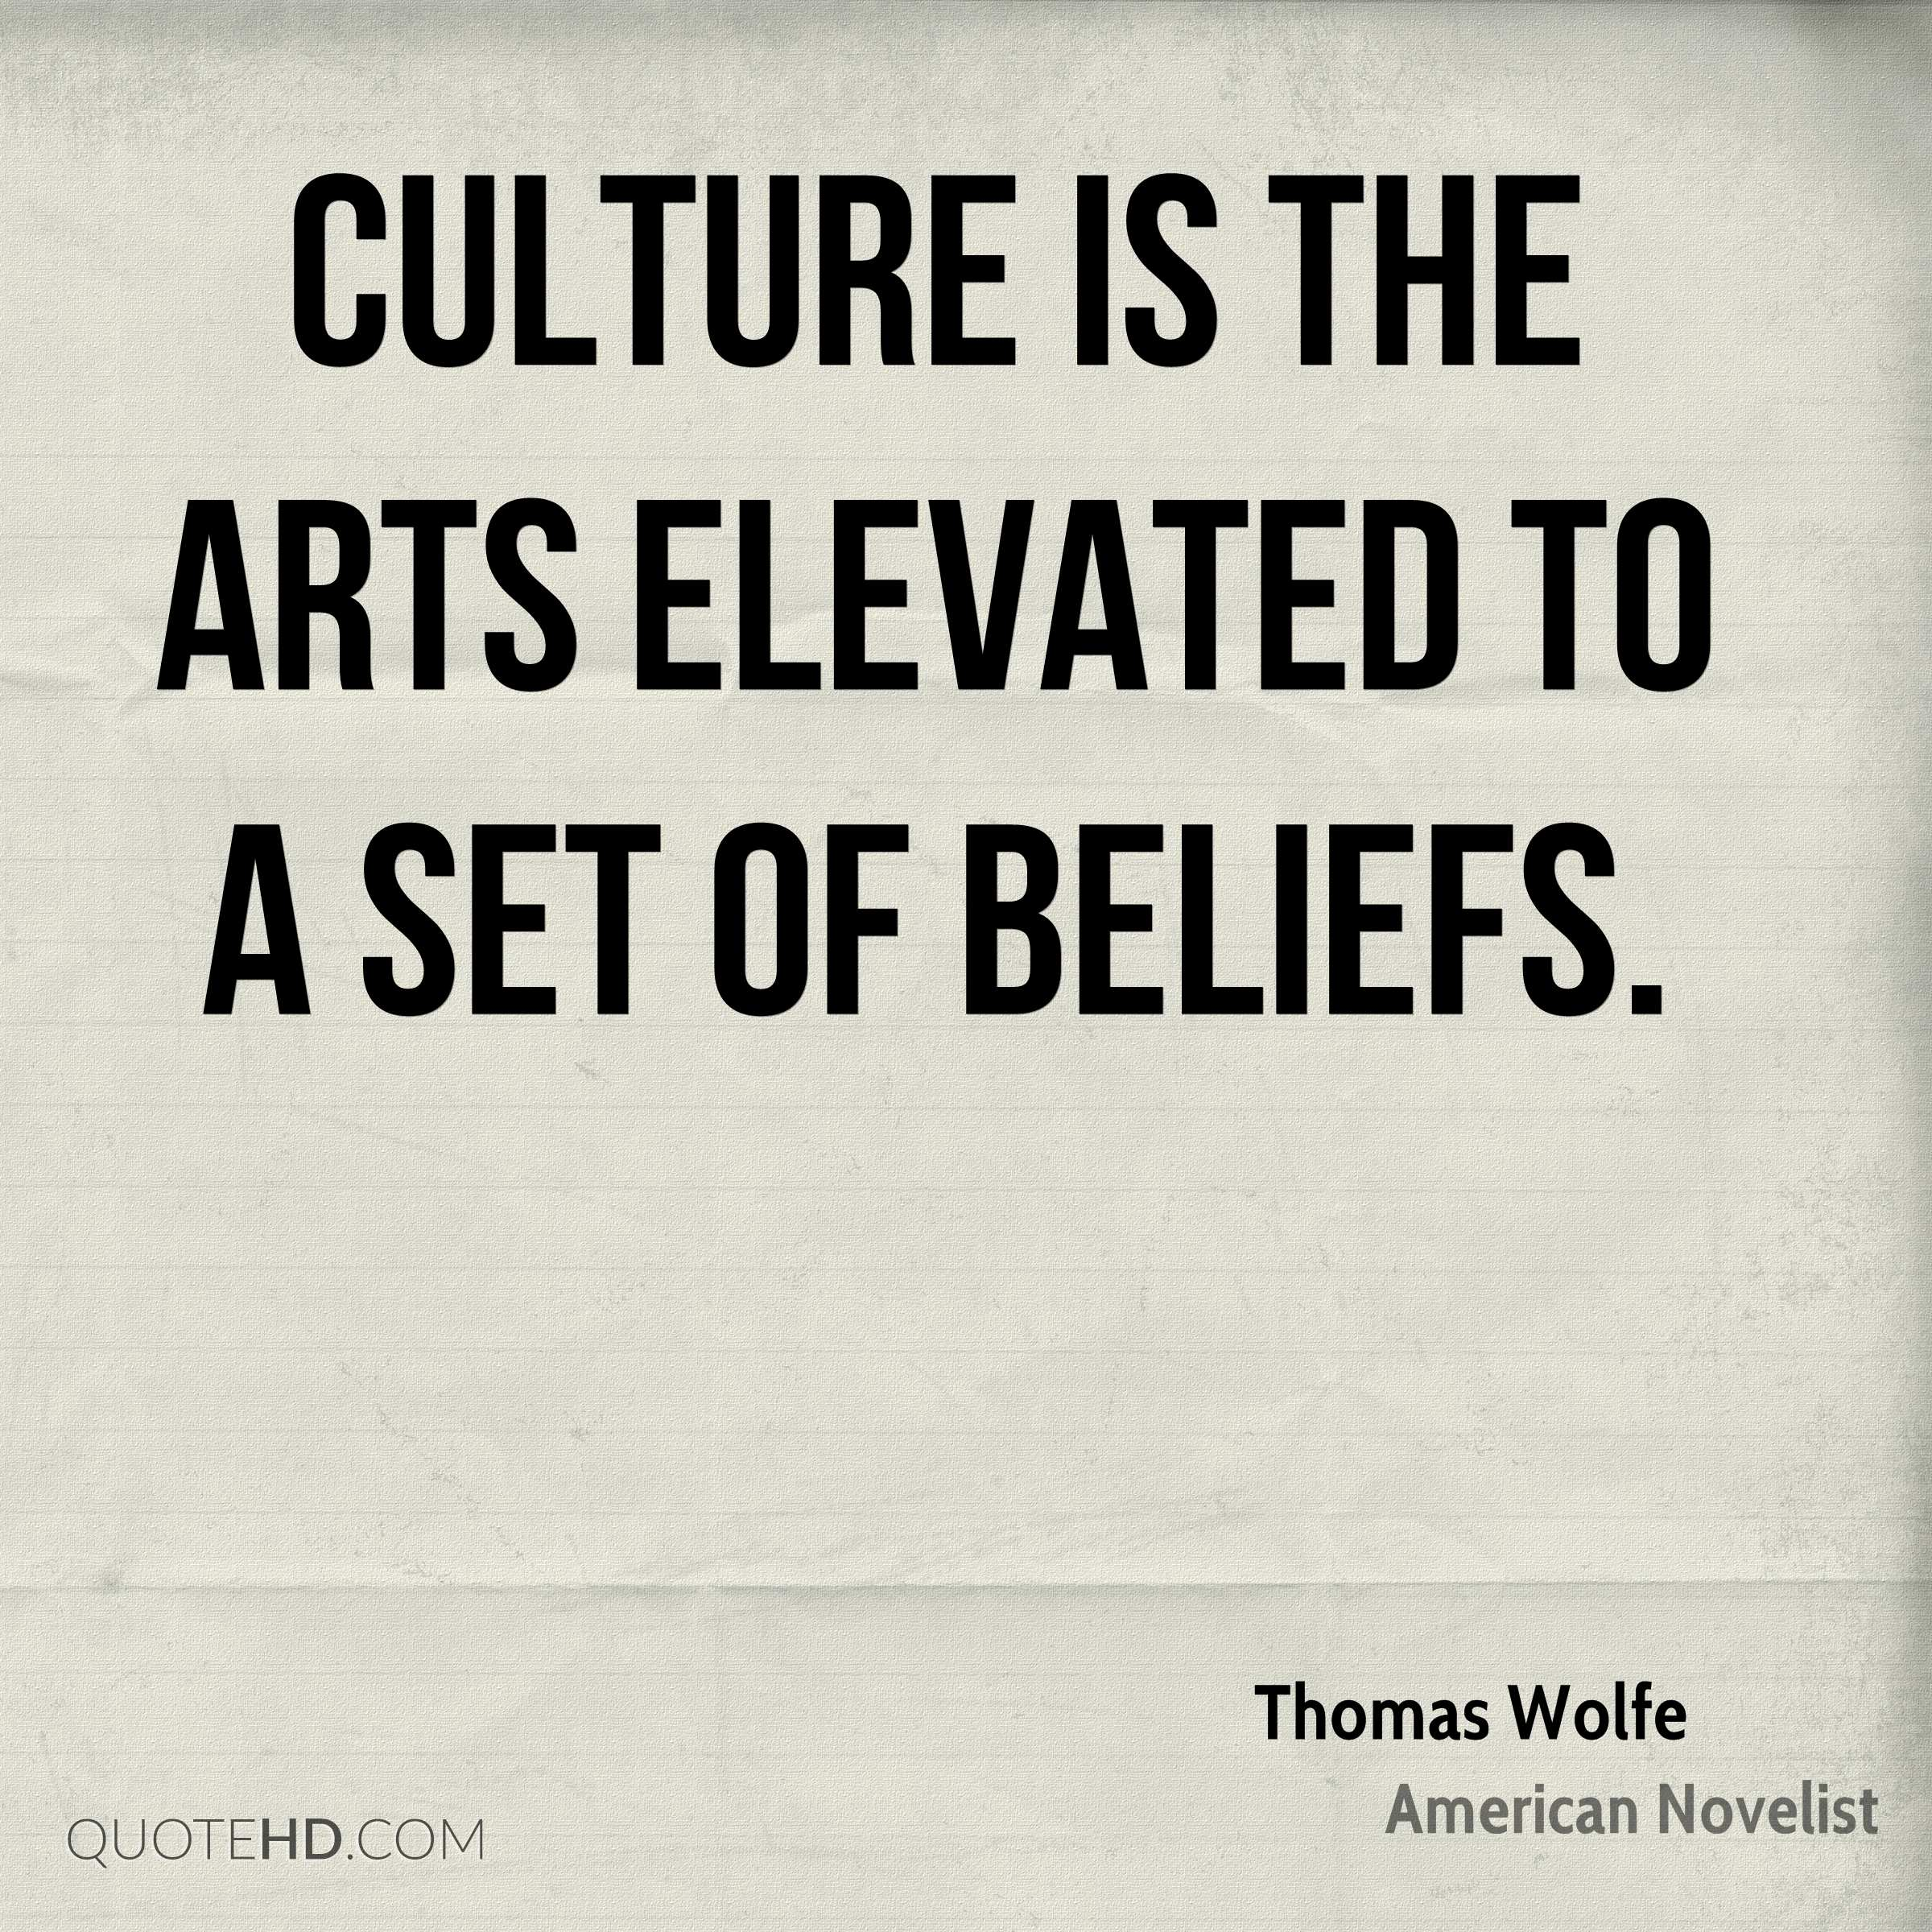 Quotes On Culture Best Thomas Wolfe Art Quotes  Quotehd